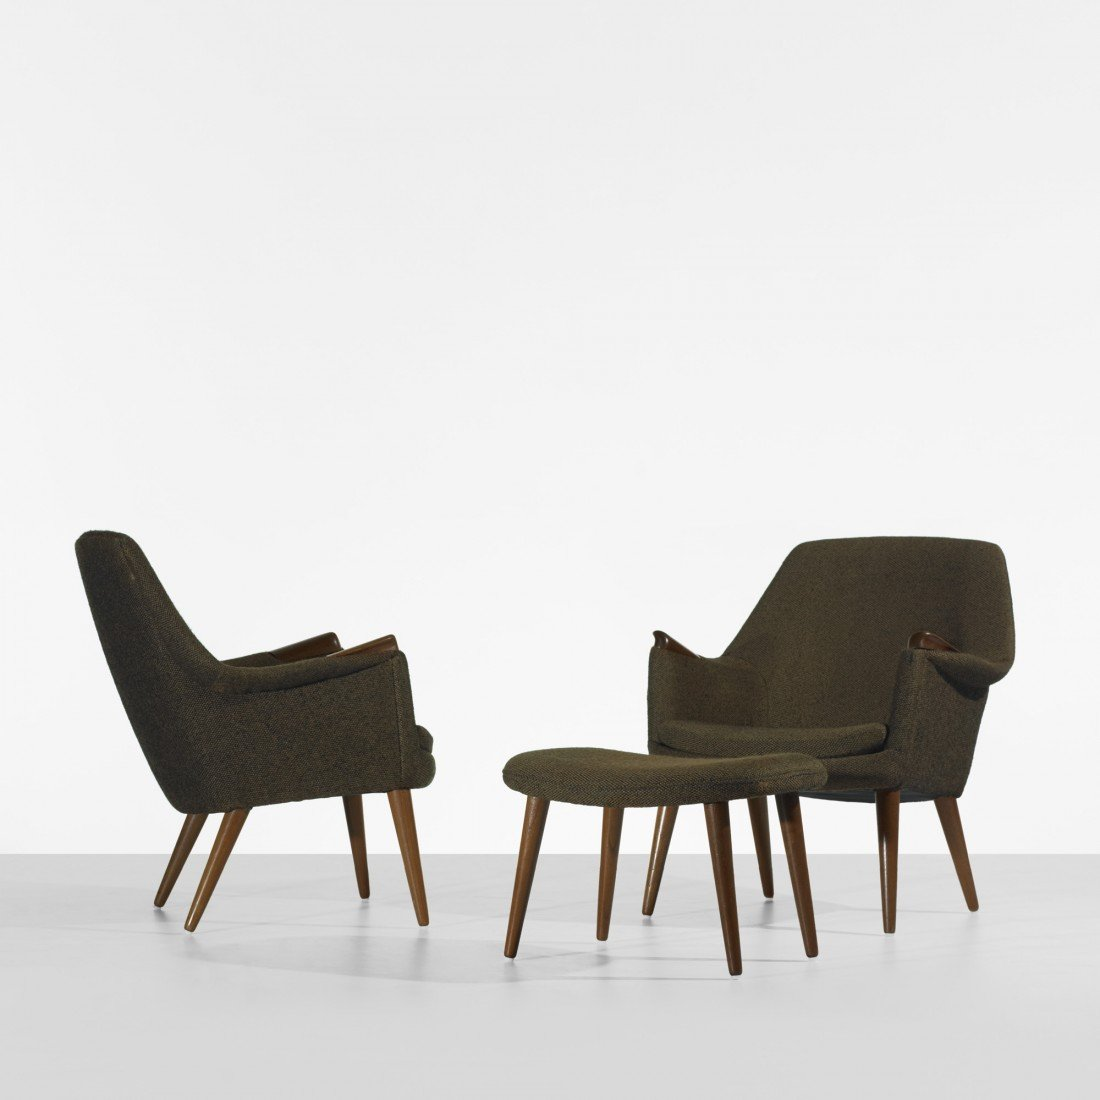 114: In the manner of Hans Wegner chairs with ottoman